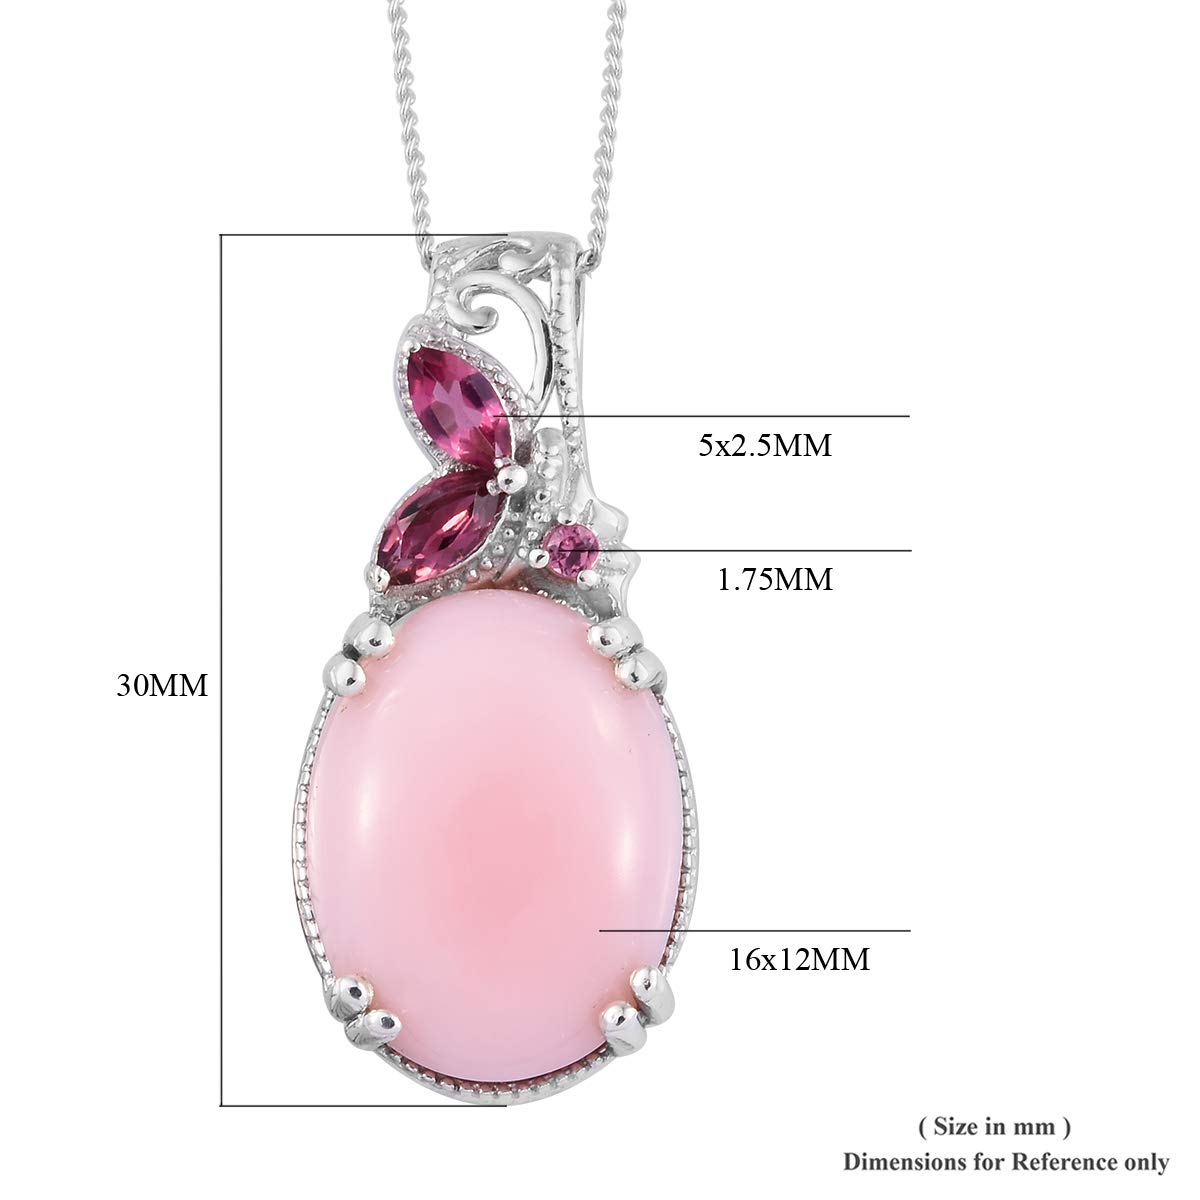 Peruvian Pink Opal Morro Redondo Pink Tourmaline Pendant Necklace 20 in Platinum Over 925 Sterling Silver